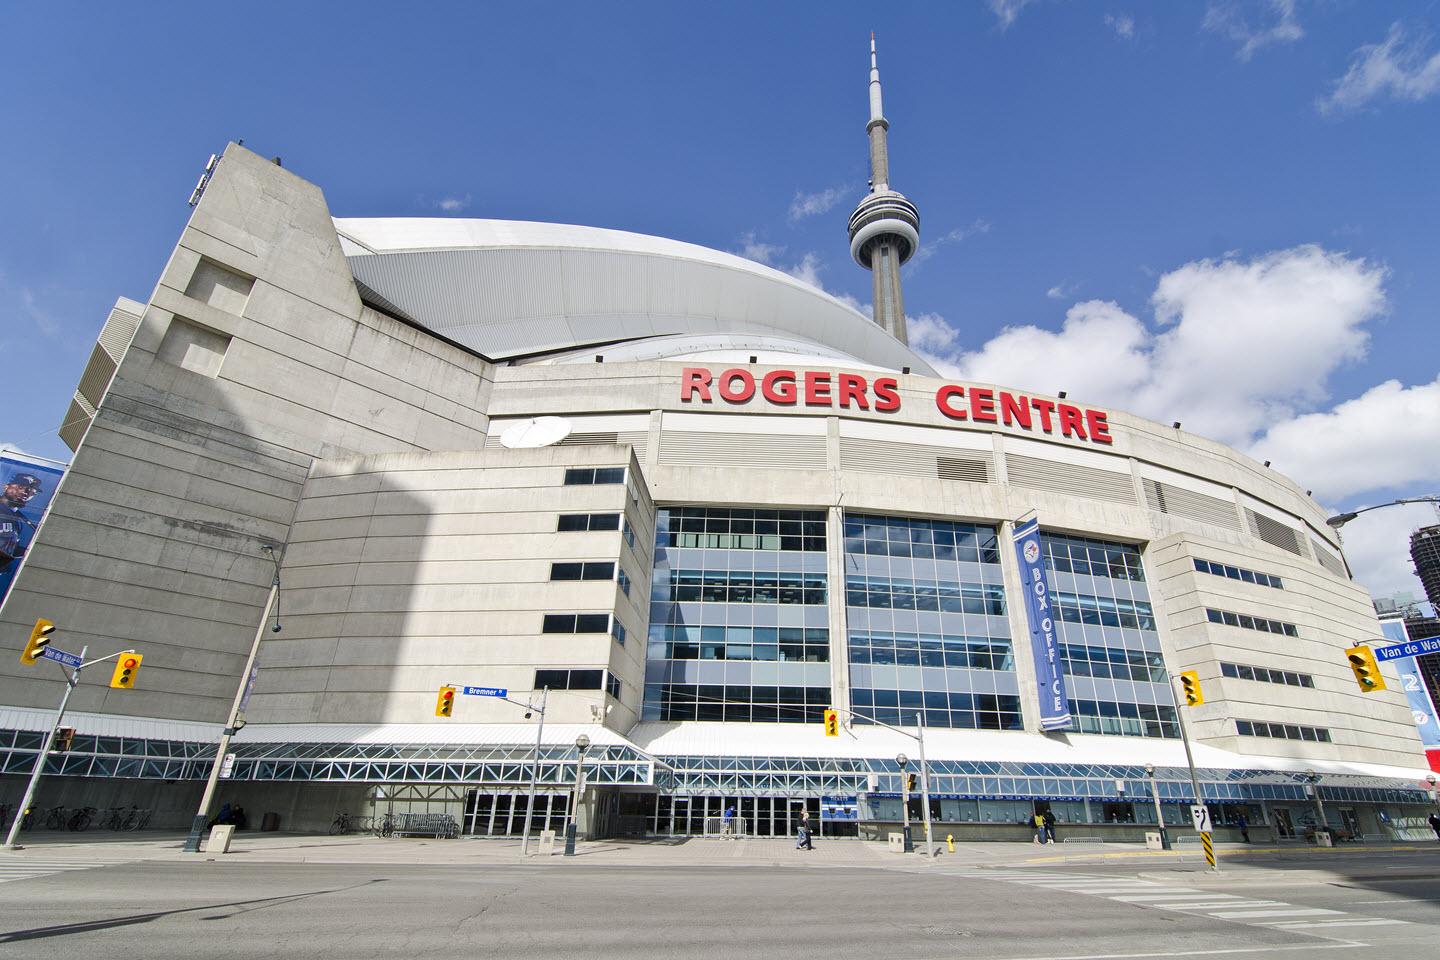 Roger's Centre (SkyDome)